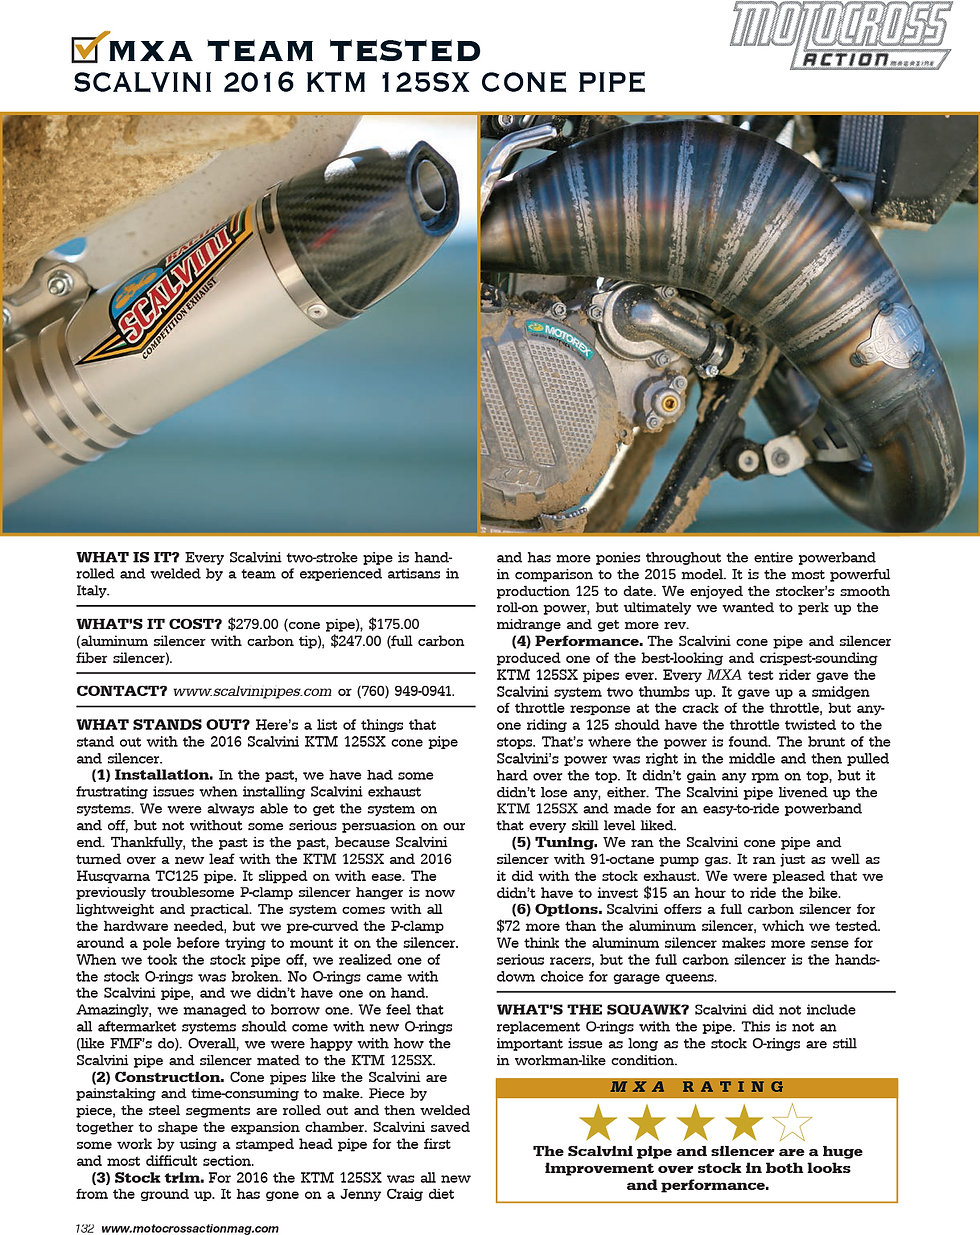 Scalvini Cone Pipe for KTM 125SX MXA Magazine Test April 2016